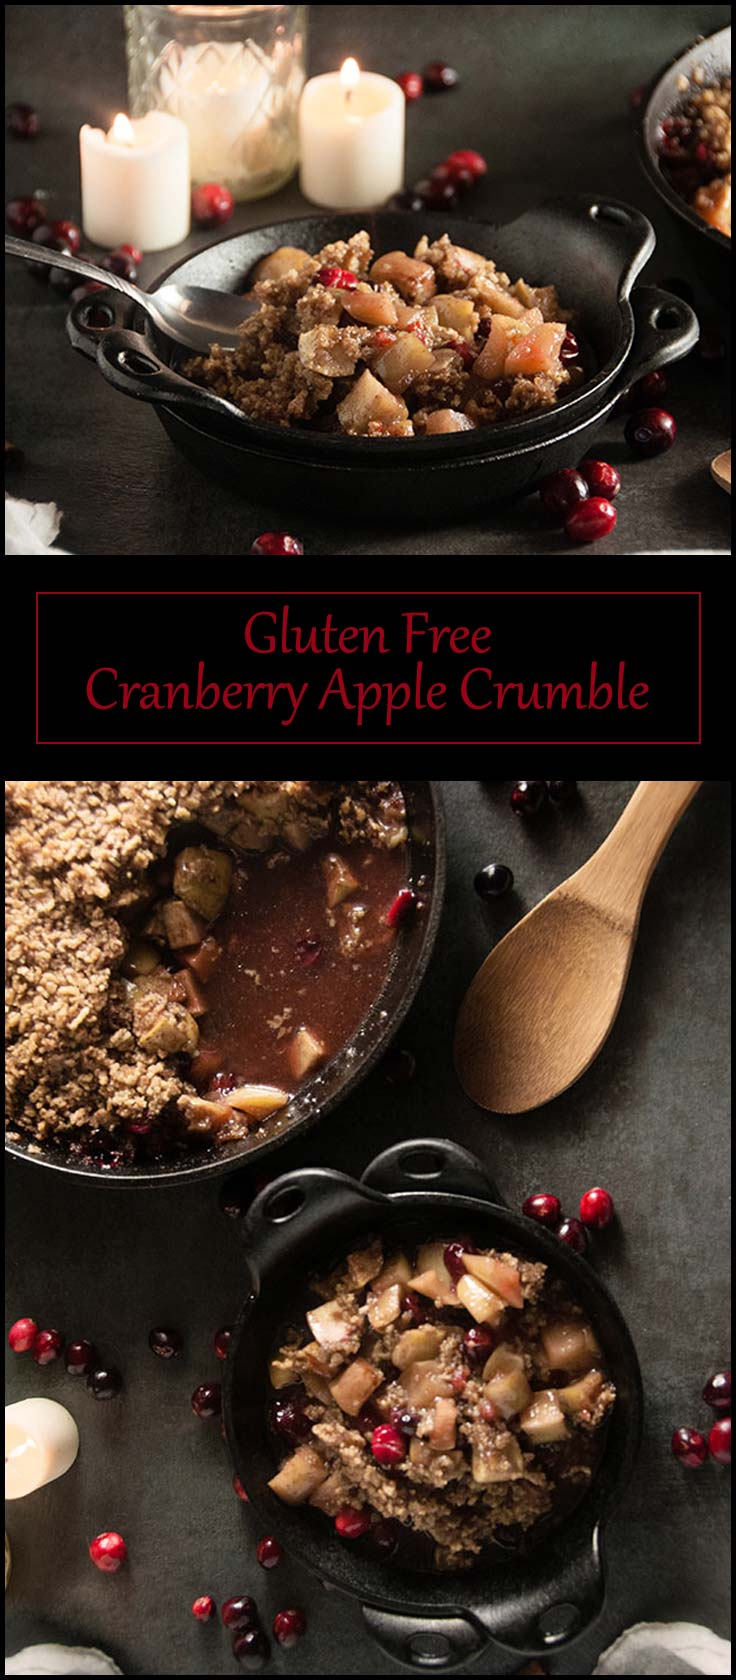 Gluten Free Cranberry Apple Crumble from www.seasonedsprinkles.com